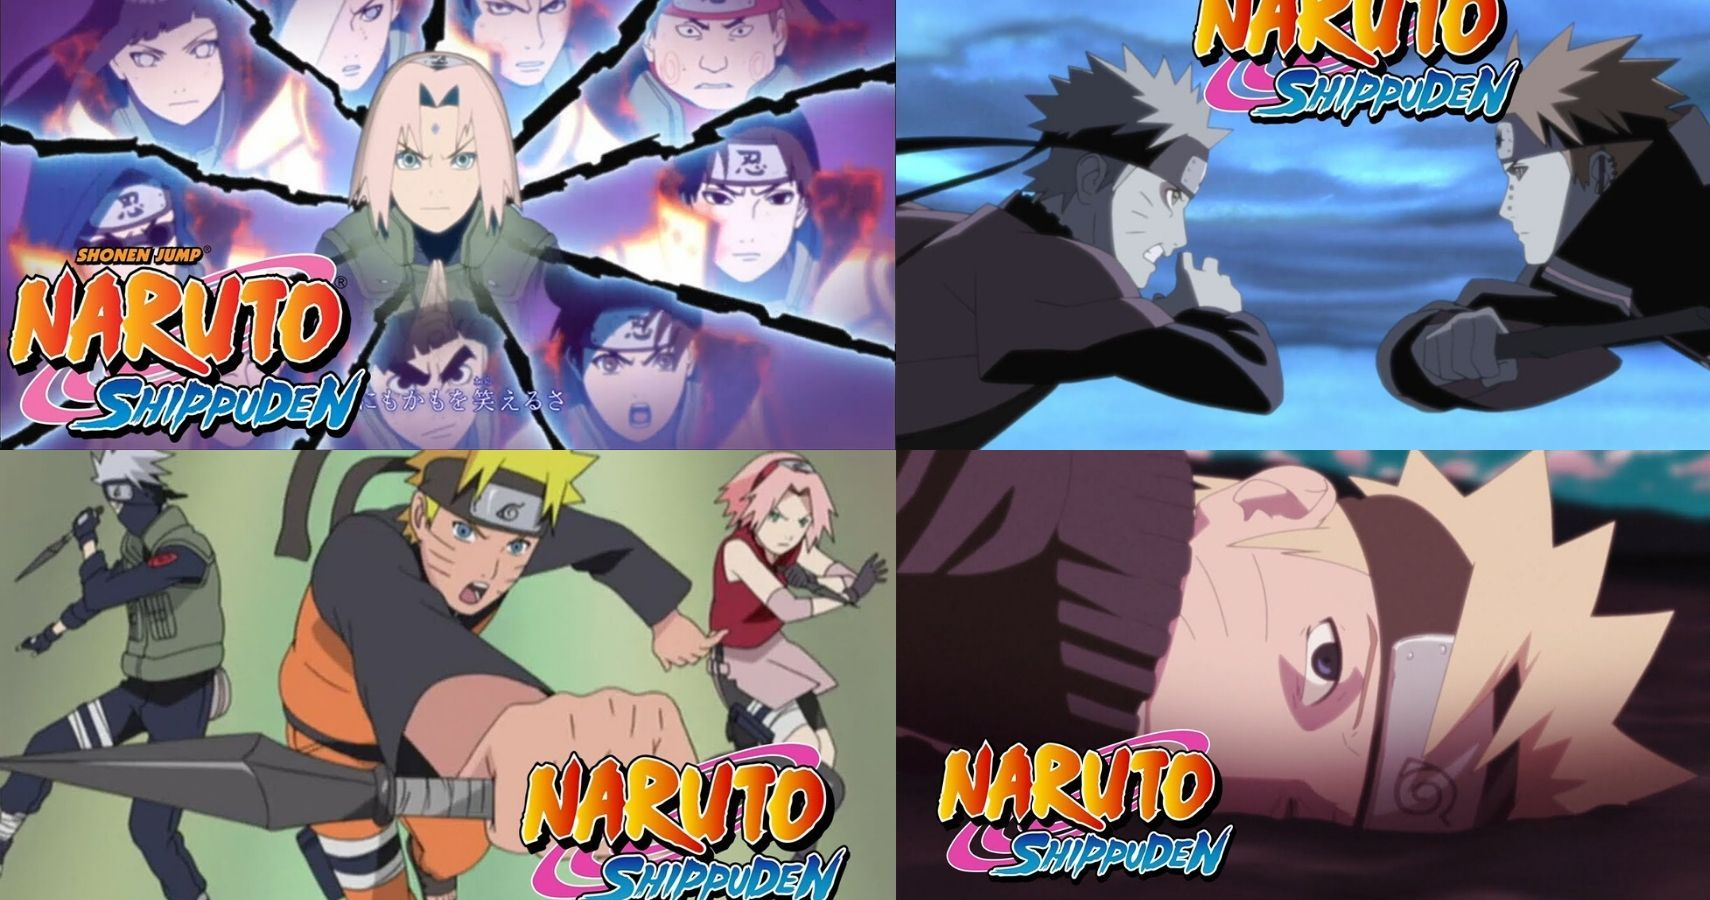 Naruto Shippuden 15 Best Opening Songs Ranked Cbr